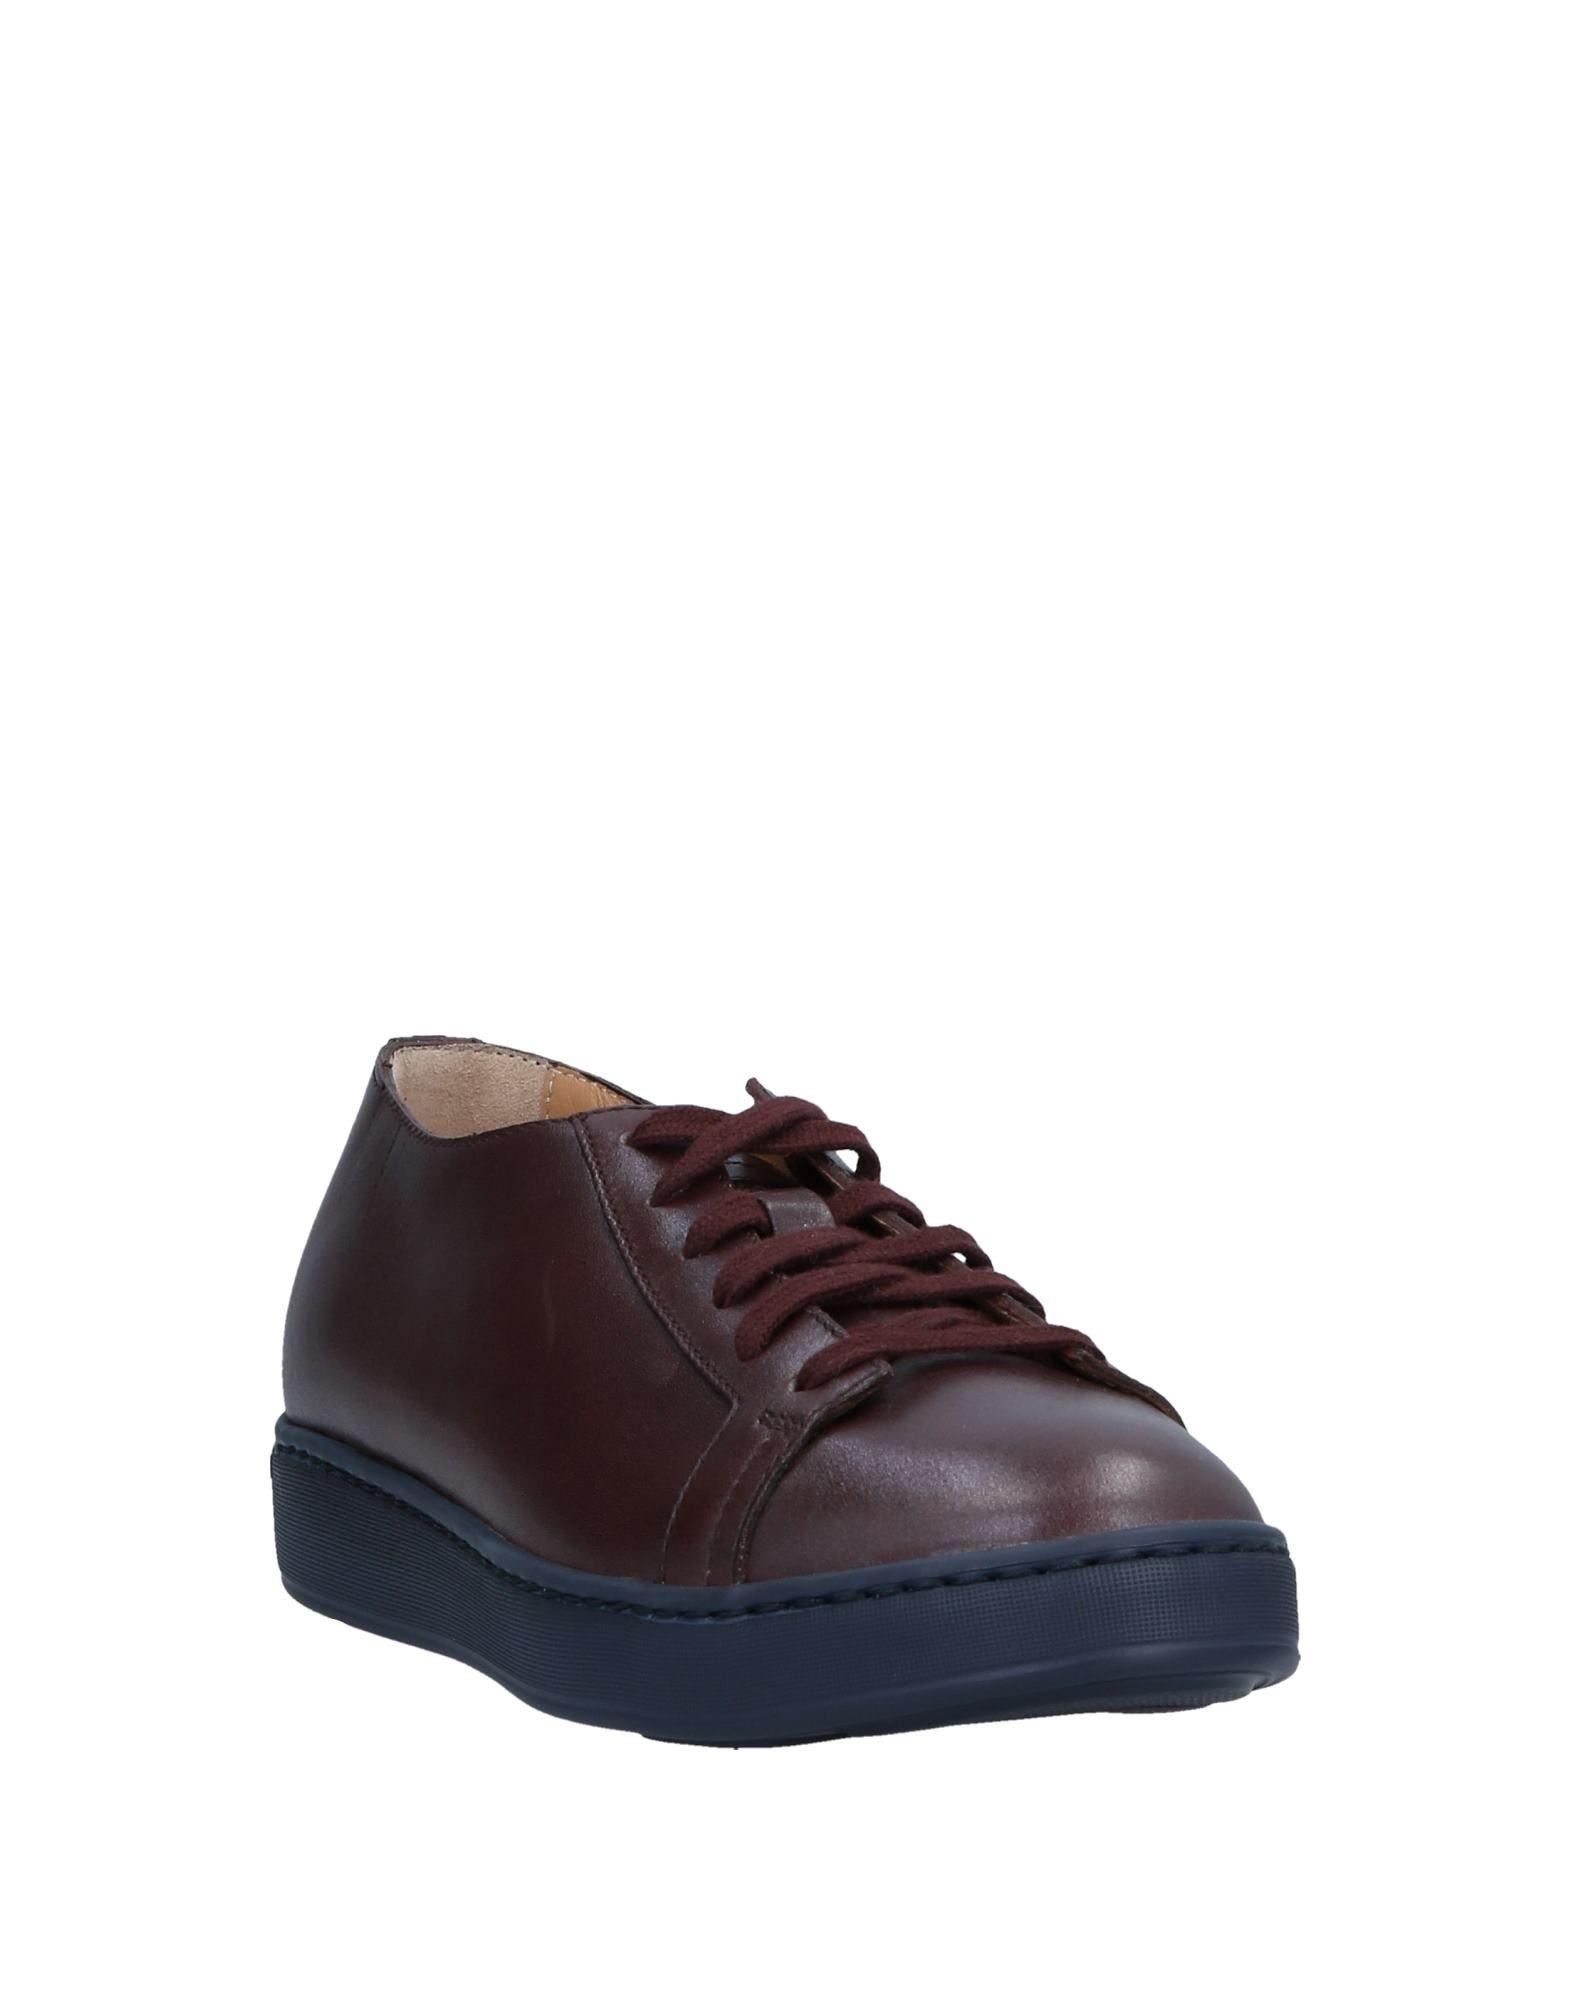 Santoni Leather Low-tops & Sneakers in Maroon (Purple)